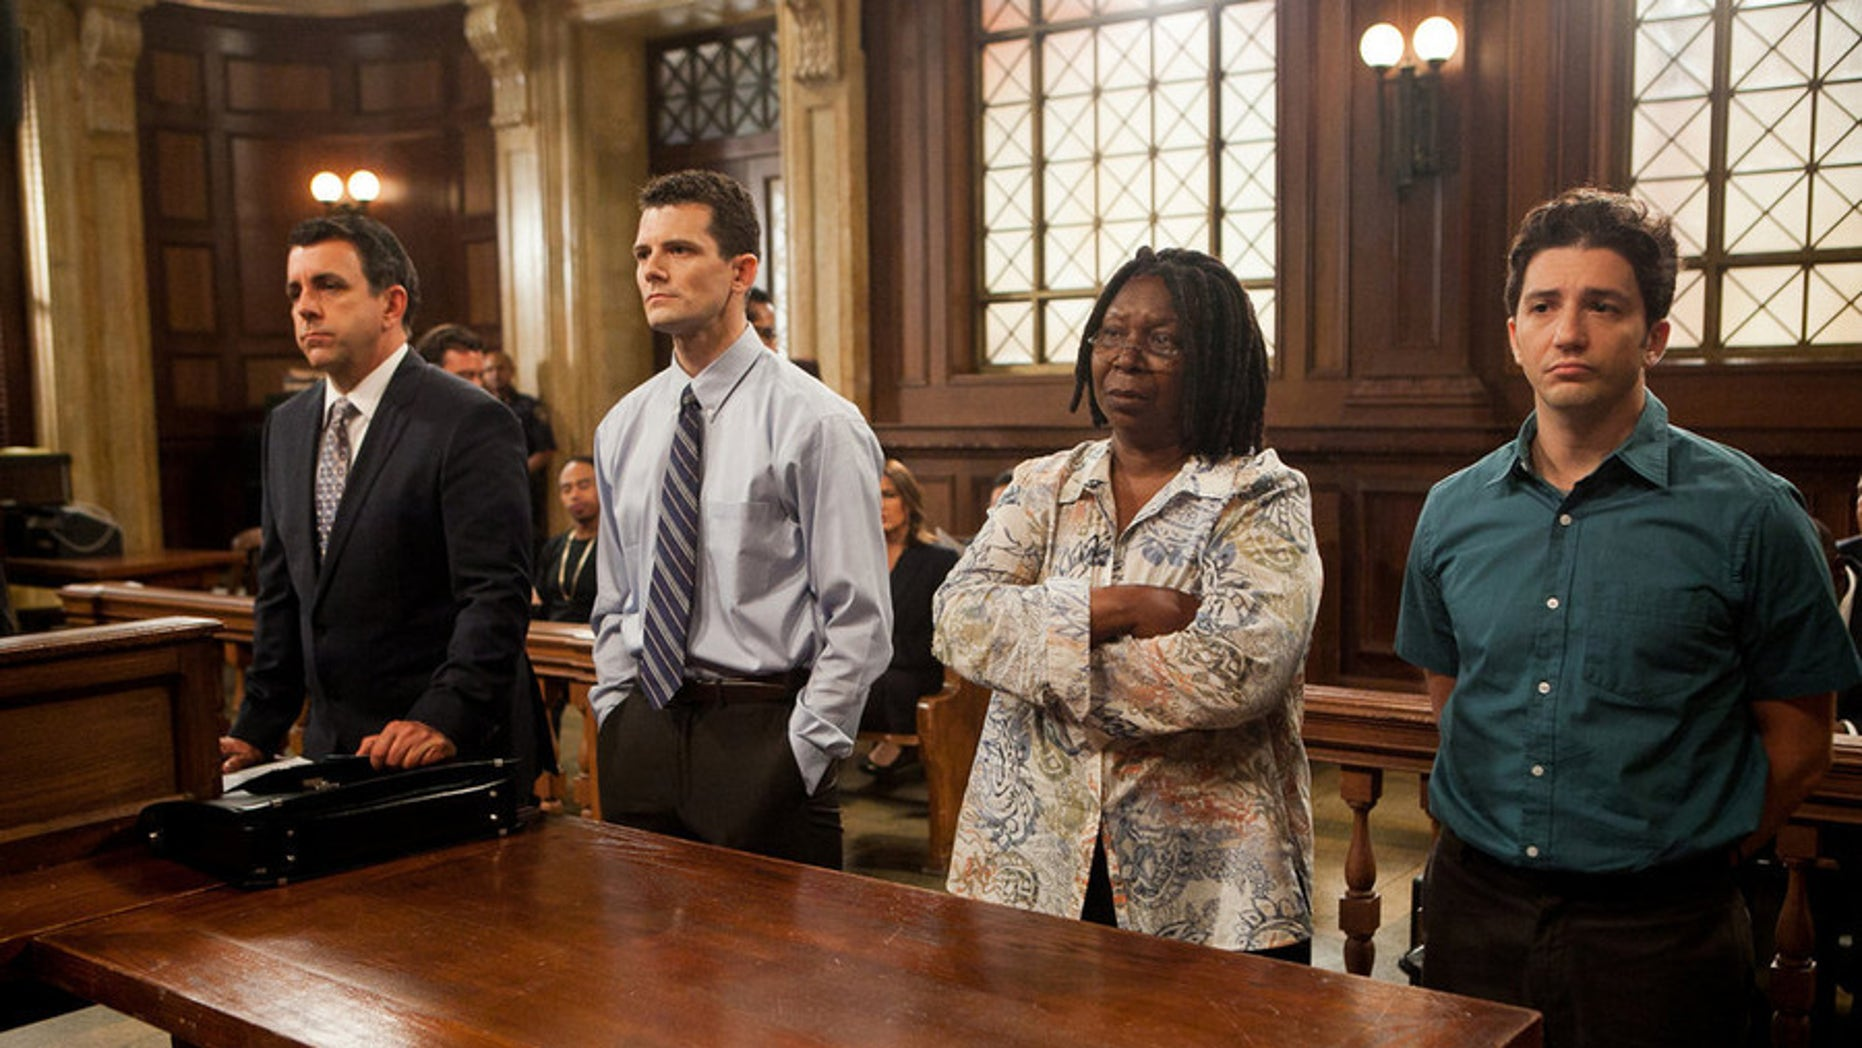 """LAW & ORDER: SPECIAL VICTIMS UNIT -- """"Institutional Fail"""" Episode 17004 -- Pictured: (l-r) Joseph Lyle Taylor as Counselor D'Angelo, Josh Marcantel as Dale Sheridan, Whoopi Goldberg as Janette Garner, John Magaro as Keith Adkins -- (Photo by: Tom Zubak/NBC)"""